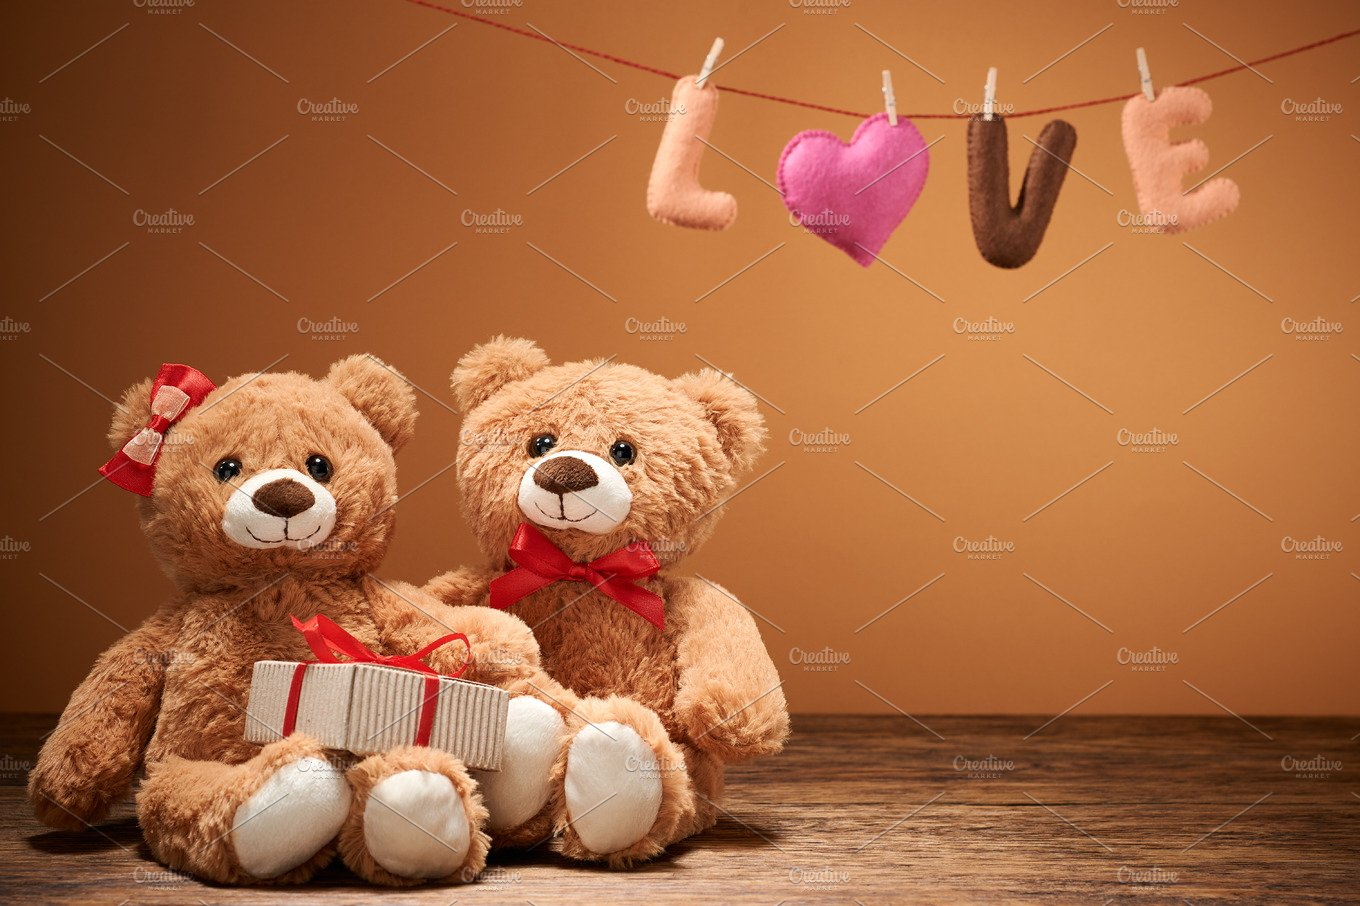 teddy bears couple love heart arts entertainment photos creative market. Black Bedroom Furniture Sets. Home Design Ideas